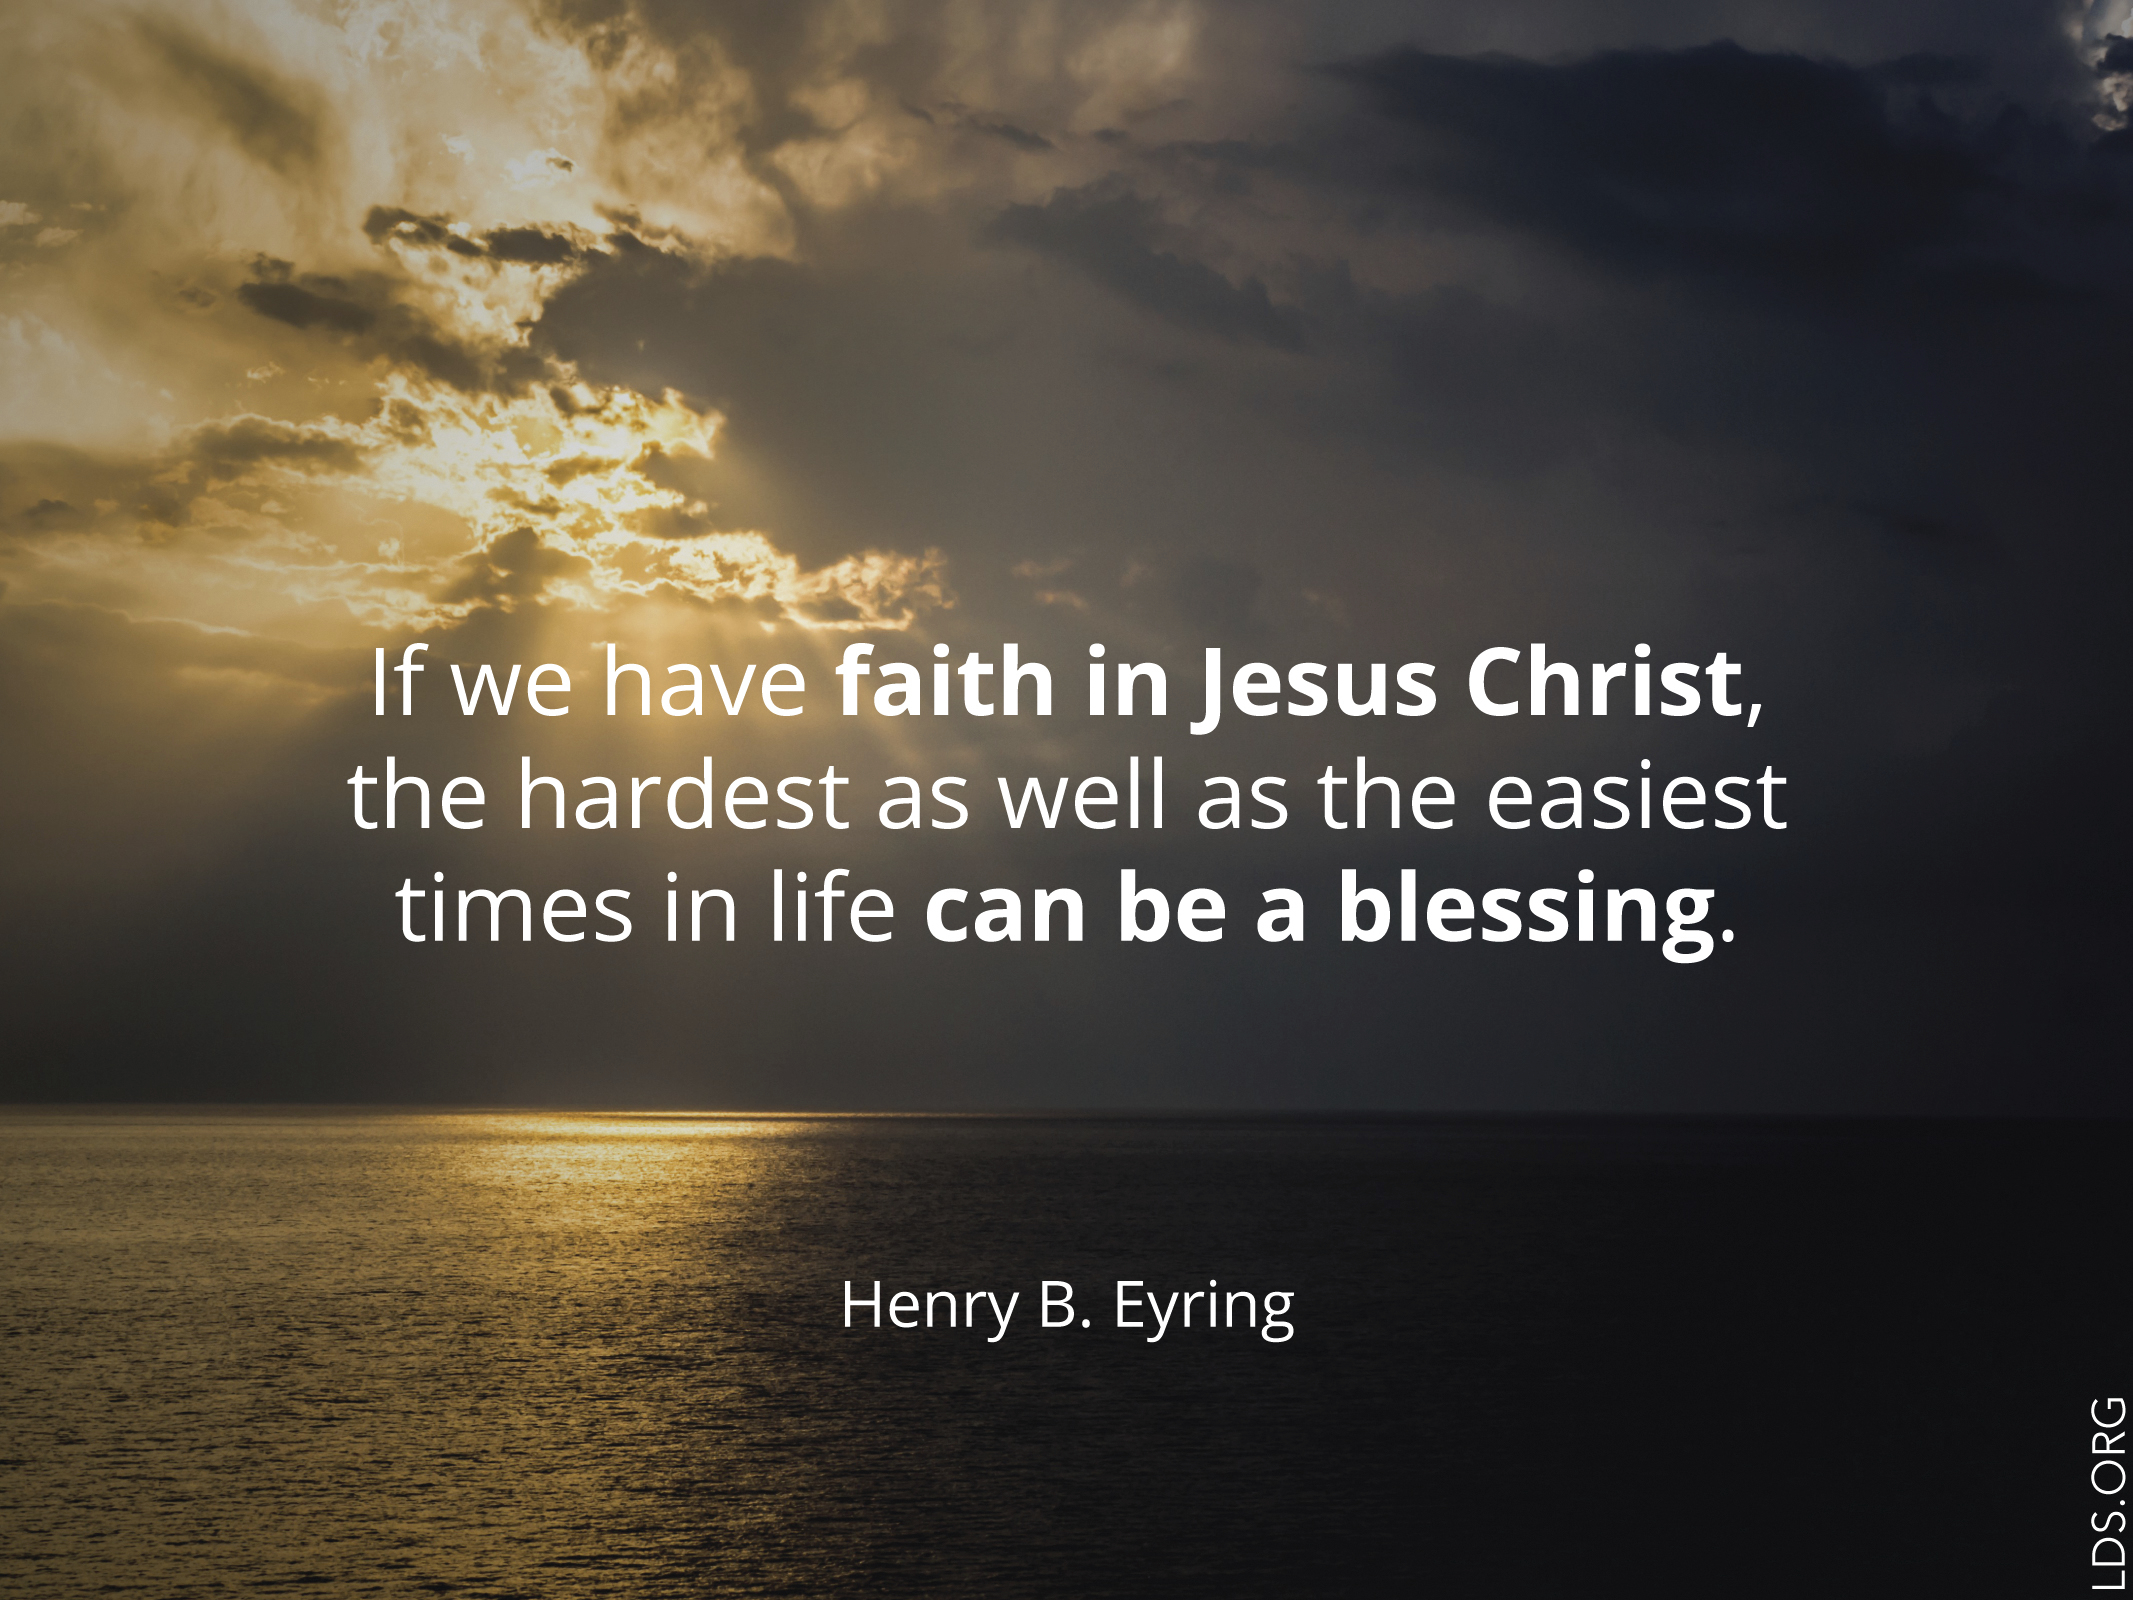 """""""If we have faith in Jesus Christ, the hardest as well as the easiest times in life can be a blessing.""""—President Henry B. Eyring, """"Mountains to Climb"""""""